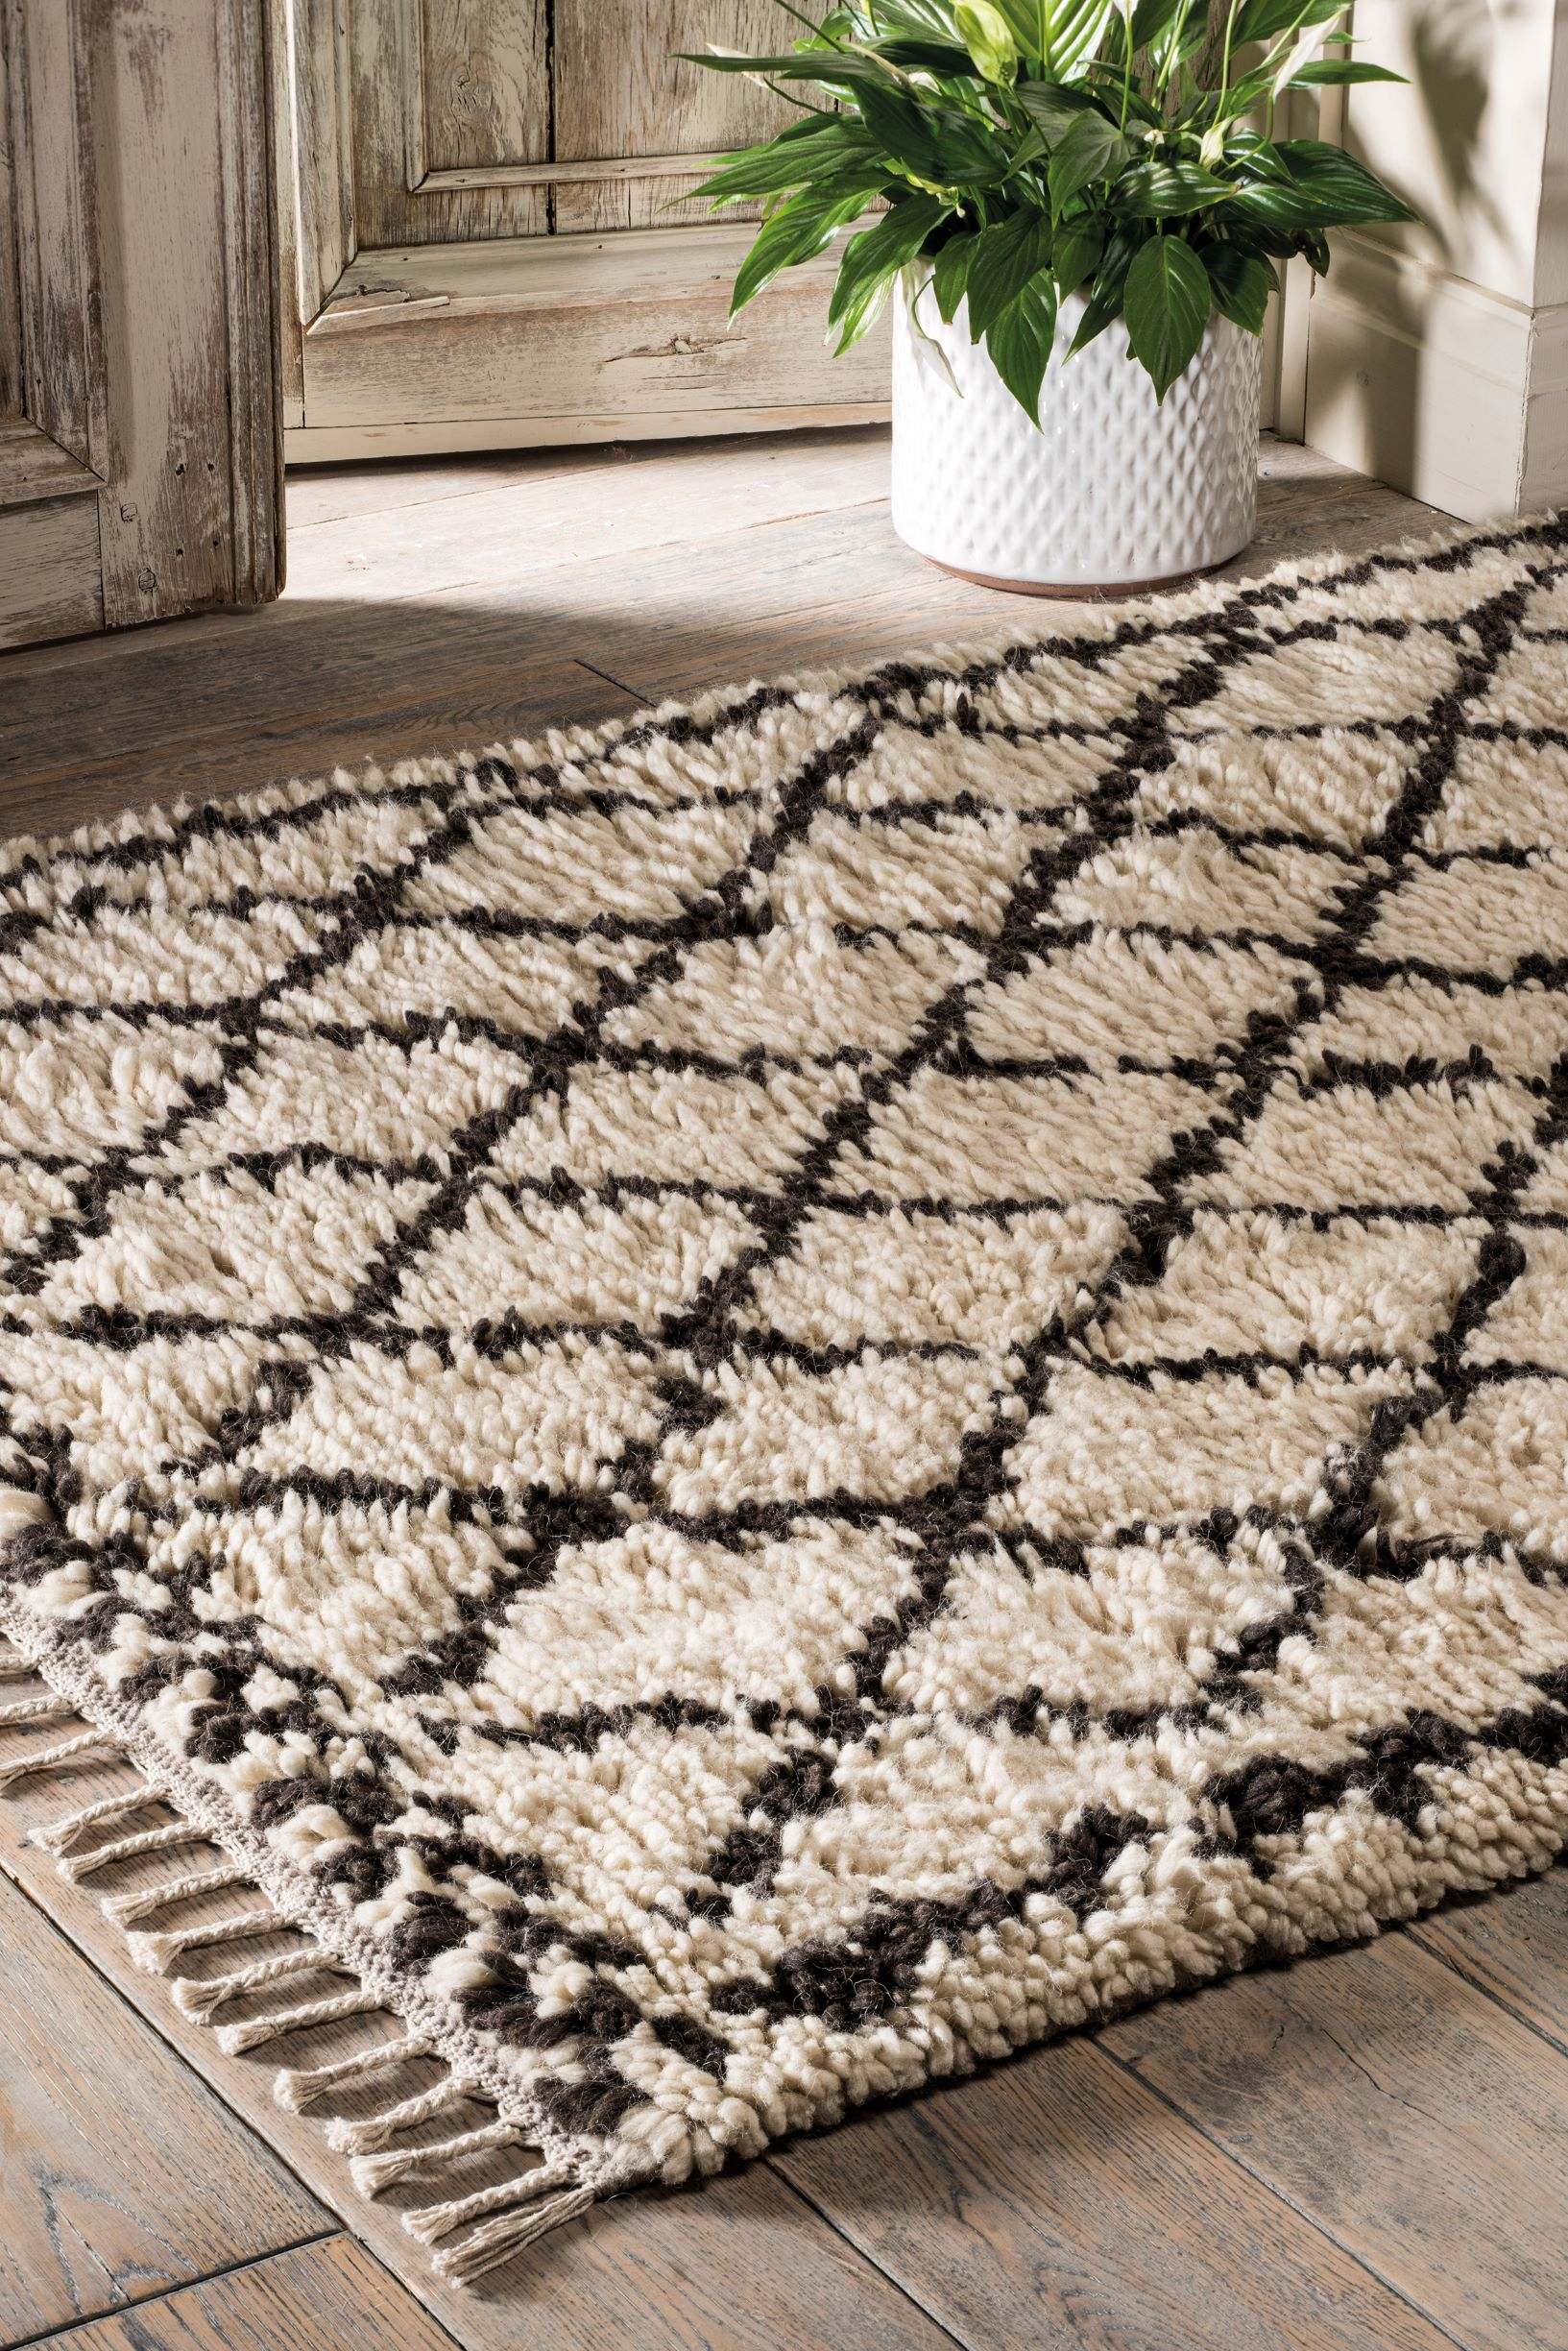 The Home Furnishings Company Marrakech Handwoven Cream Shaggy Rug